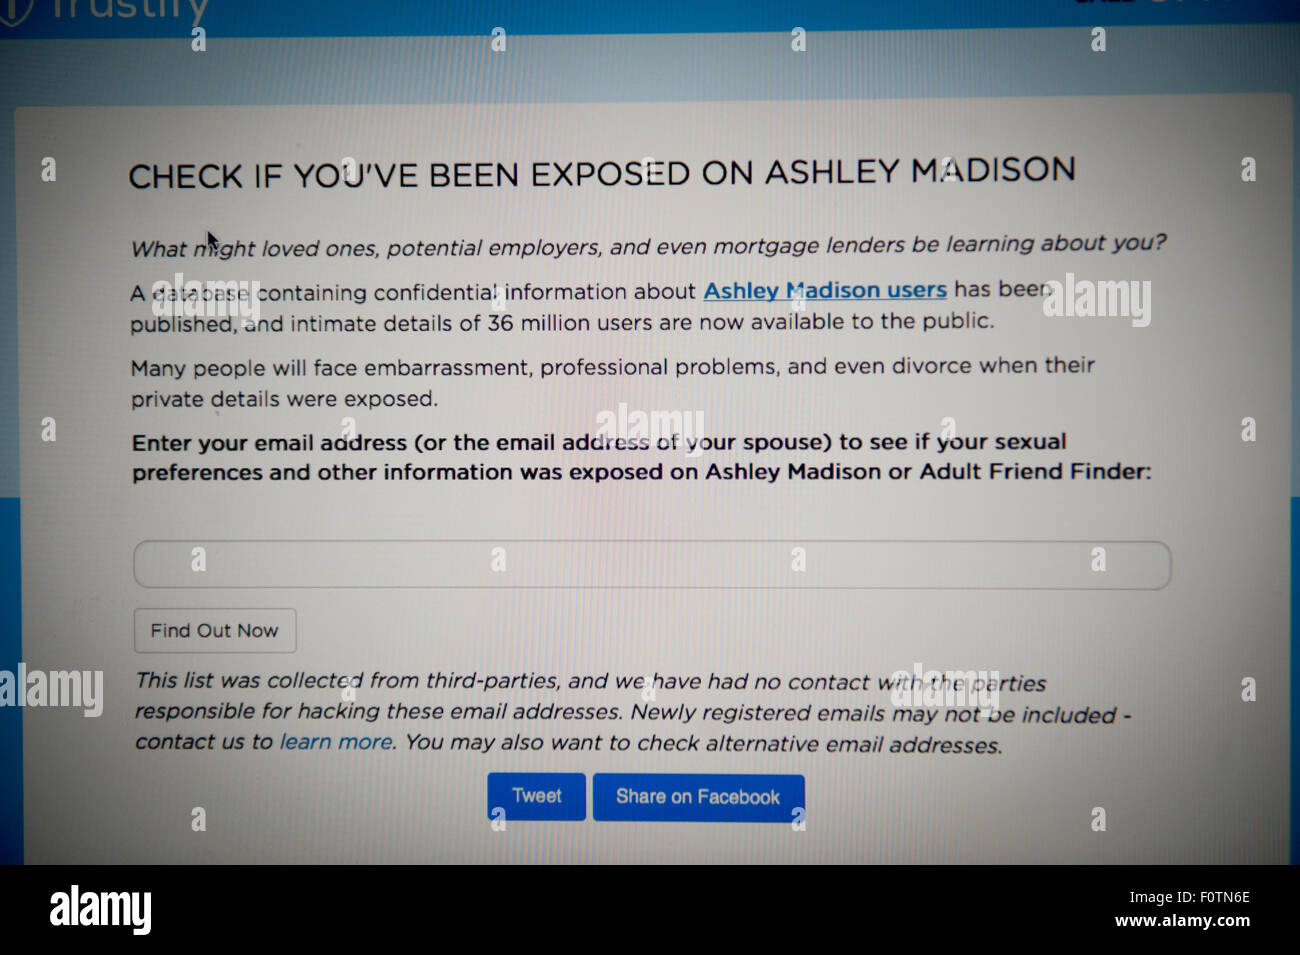 A picture of desktop mac computer displaying a page on Trustify, Check if you've been exposed on ashley madison - Stock Image